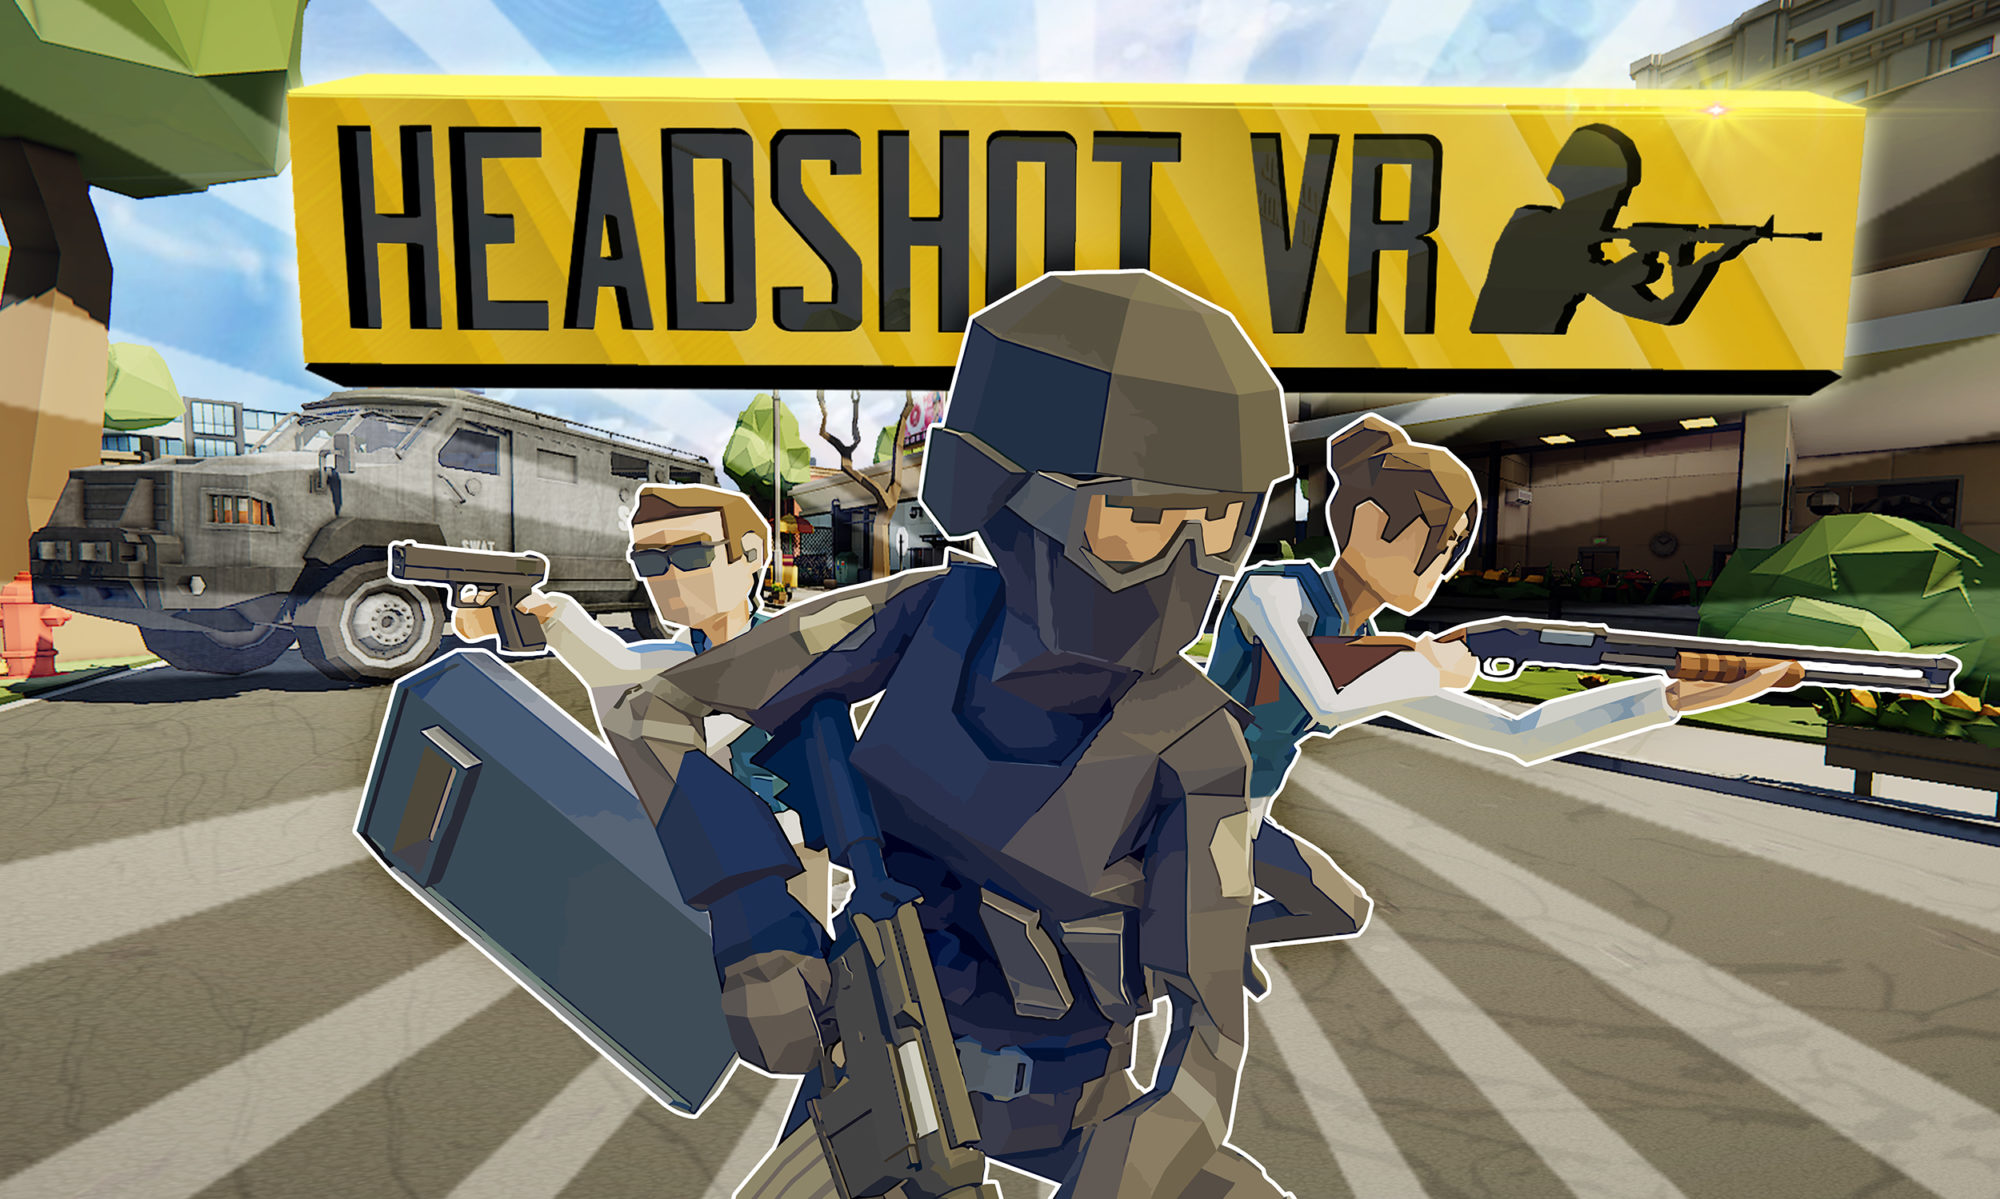 HeadShotVR - multiplayer VR shooter